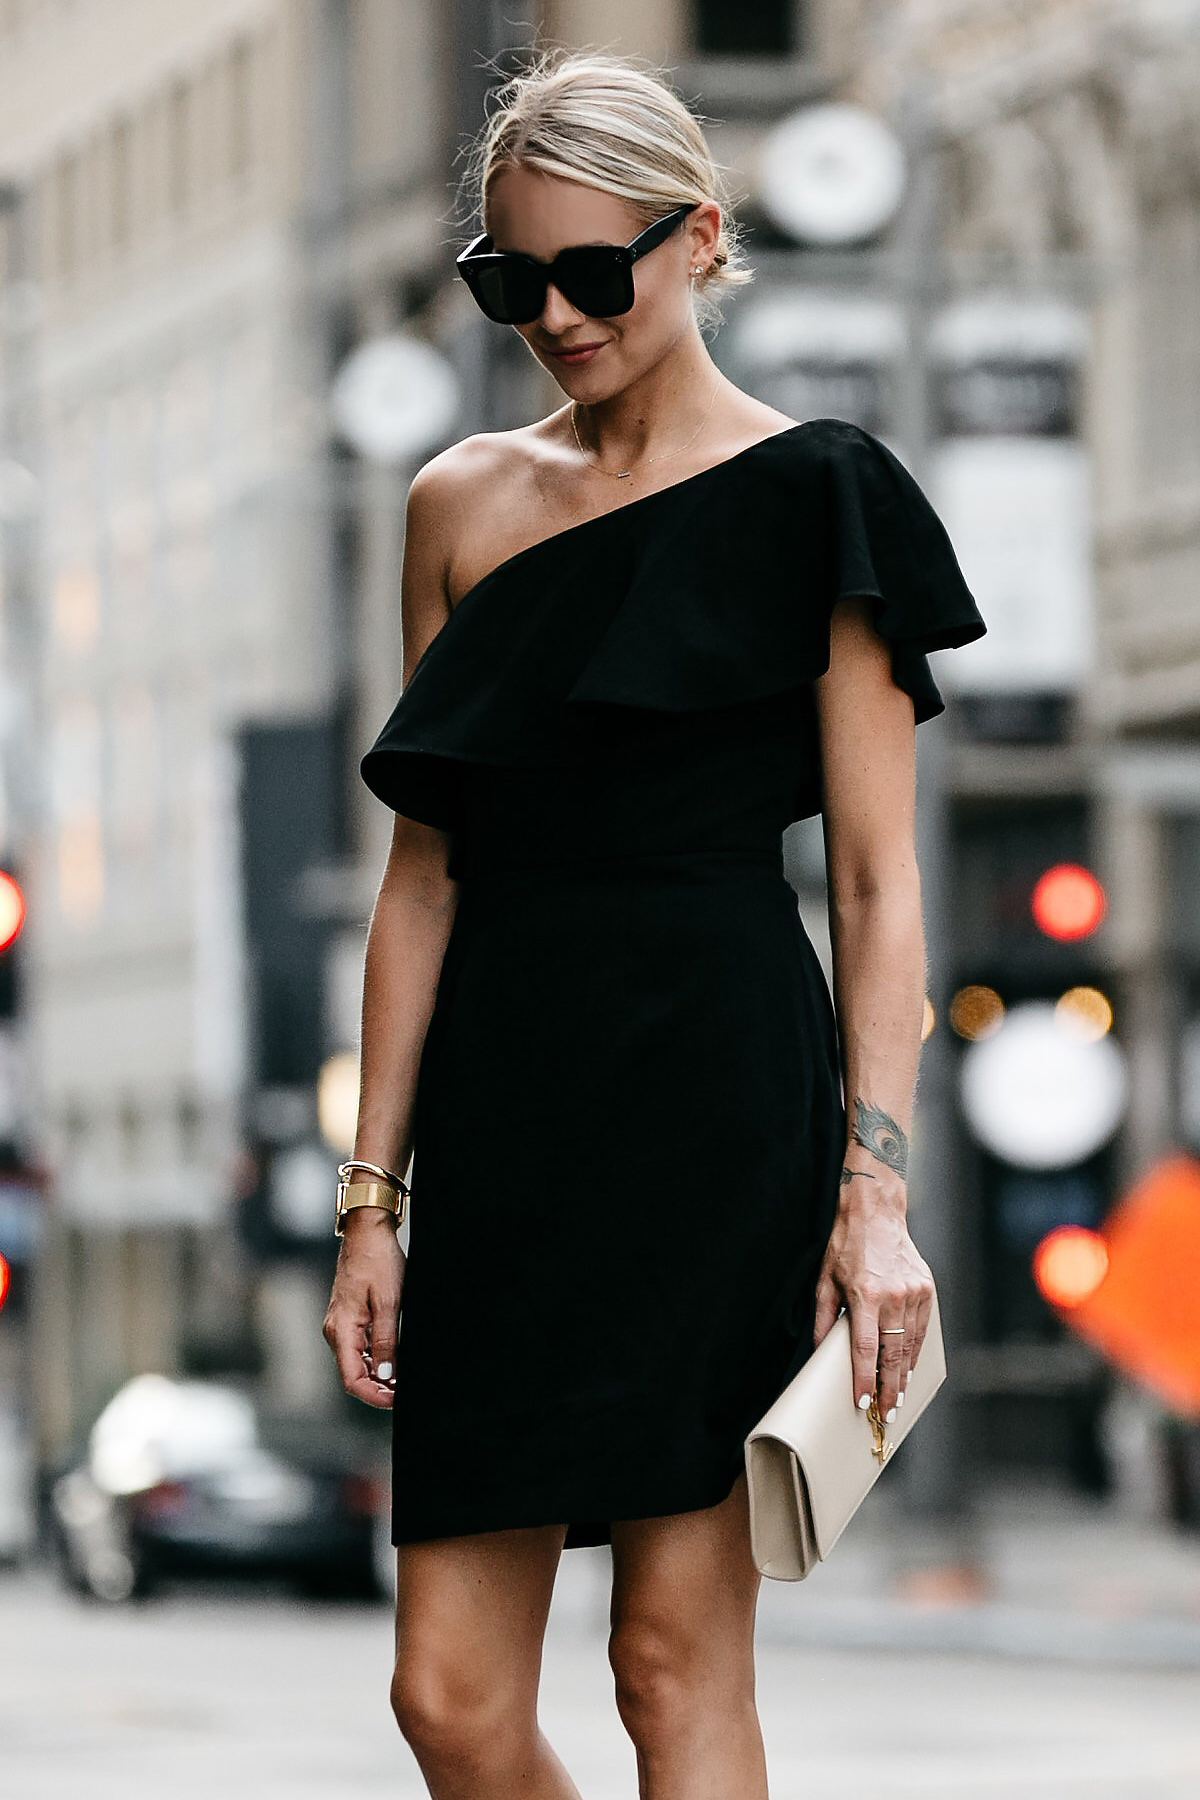 Blonde Wearing Nordstrom Black One Shoulder Ruffle Dress Saint Laurent Monogram Clutch Fashion Jackson Dallas Blogger Fashion Blogger Street Style